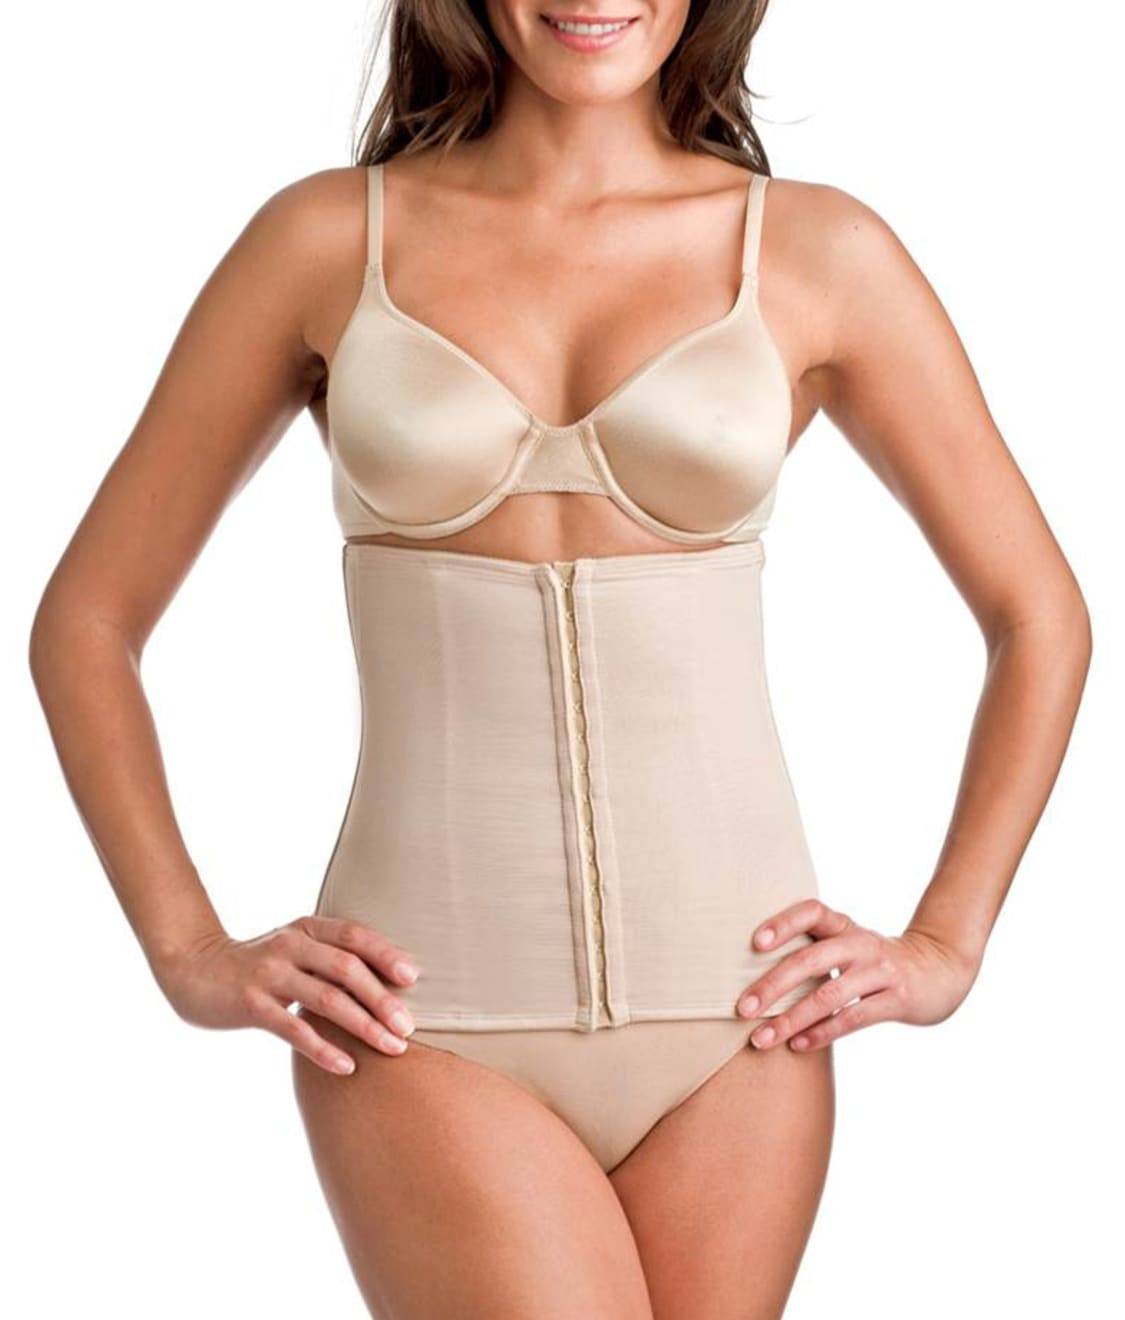 2b20240fb62 Miraclesuit Extra Firm Control Waist Cincher.  45.00. FREE 2-DAY SHIPPING  ON ORDERS ...